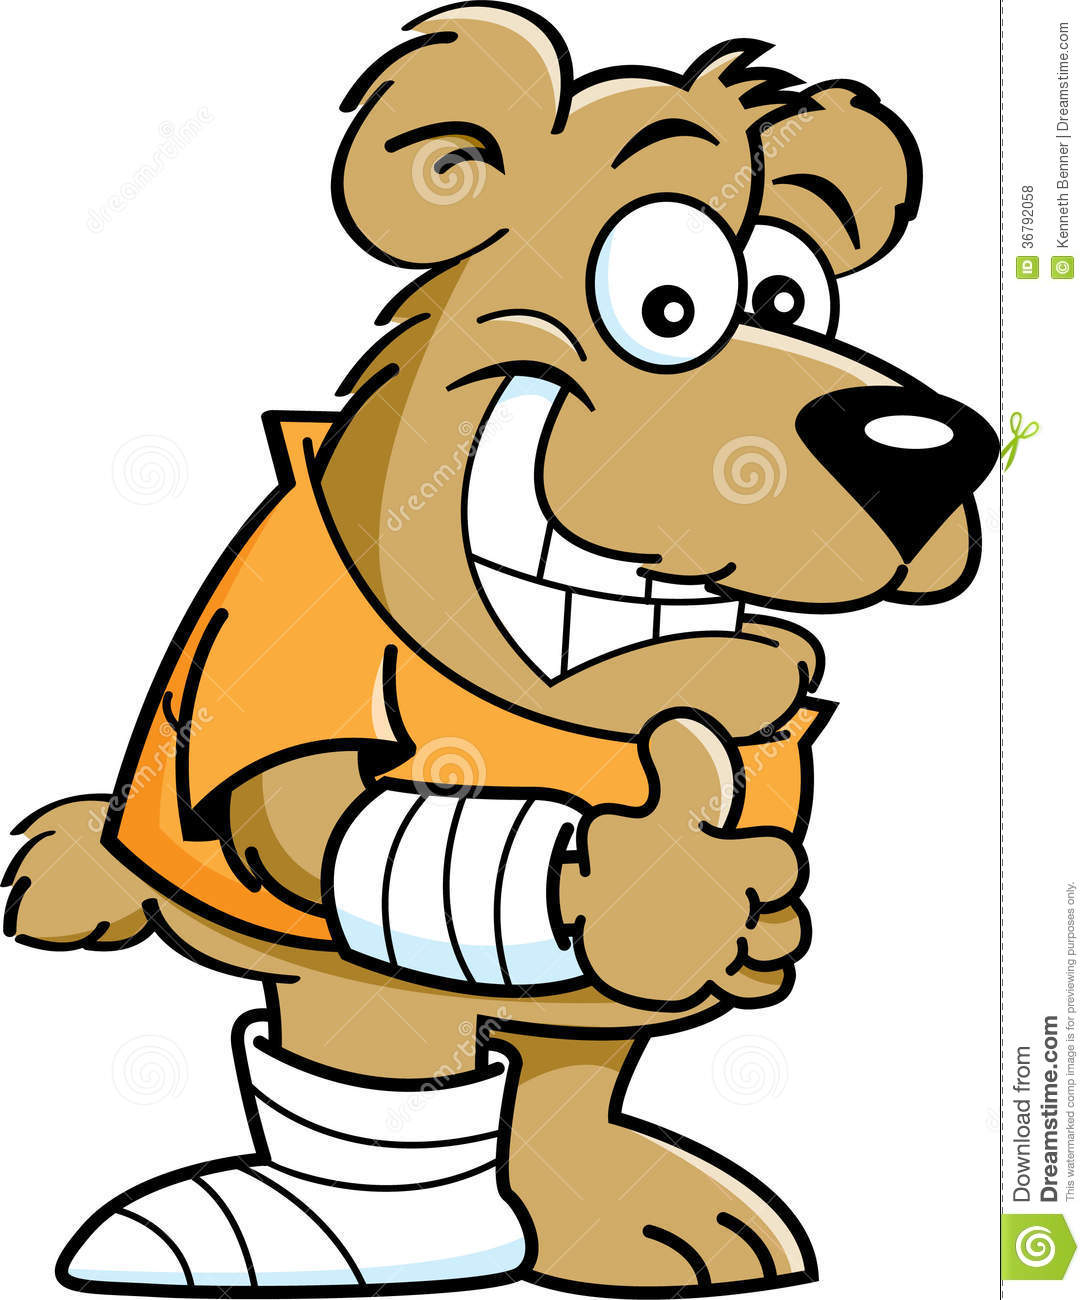 Cartoon Characters Voices : Cartoon bear with casts royalty free stock photos image